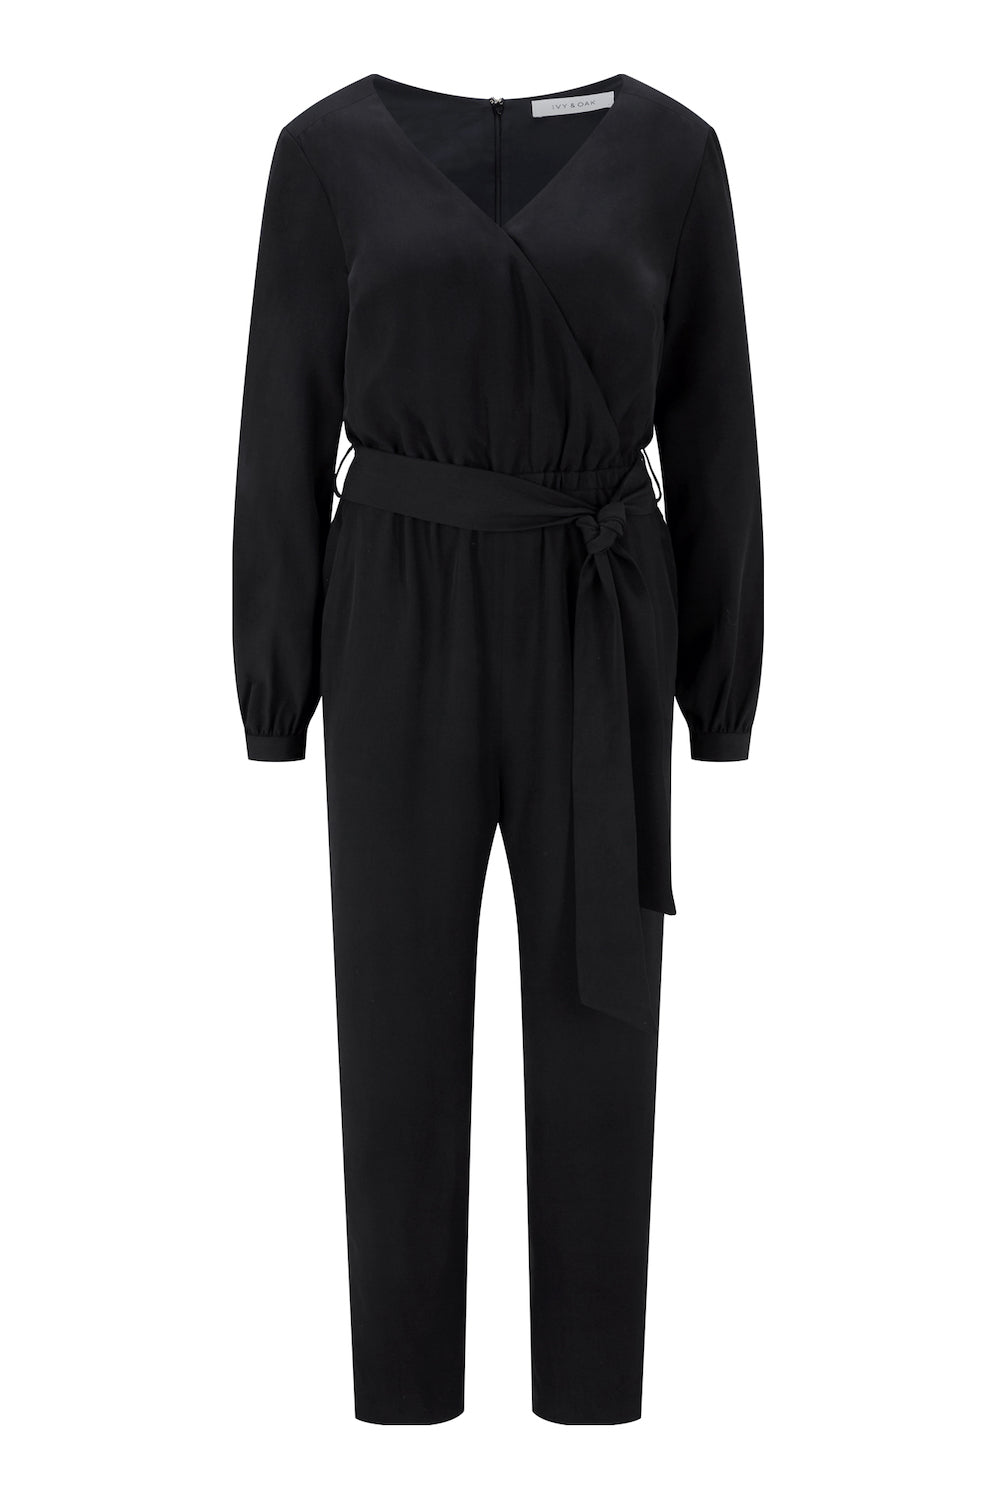 Ivy & Oak Cropped Jumpsuit Black